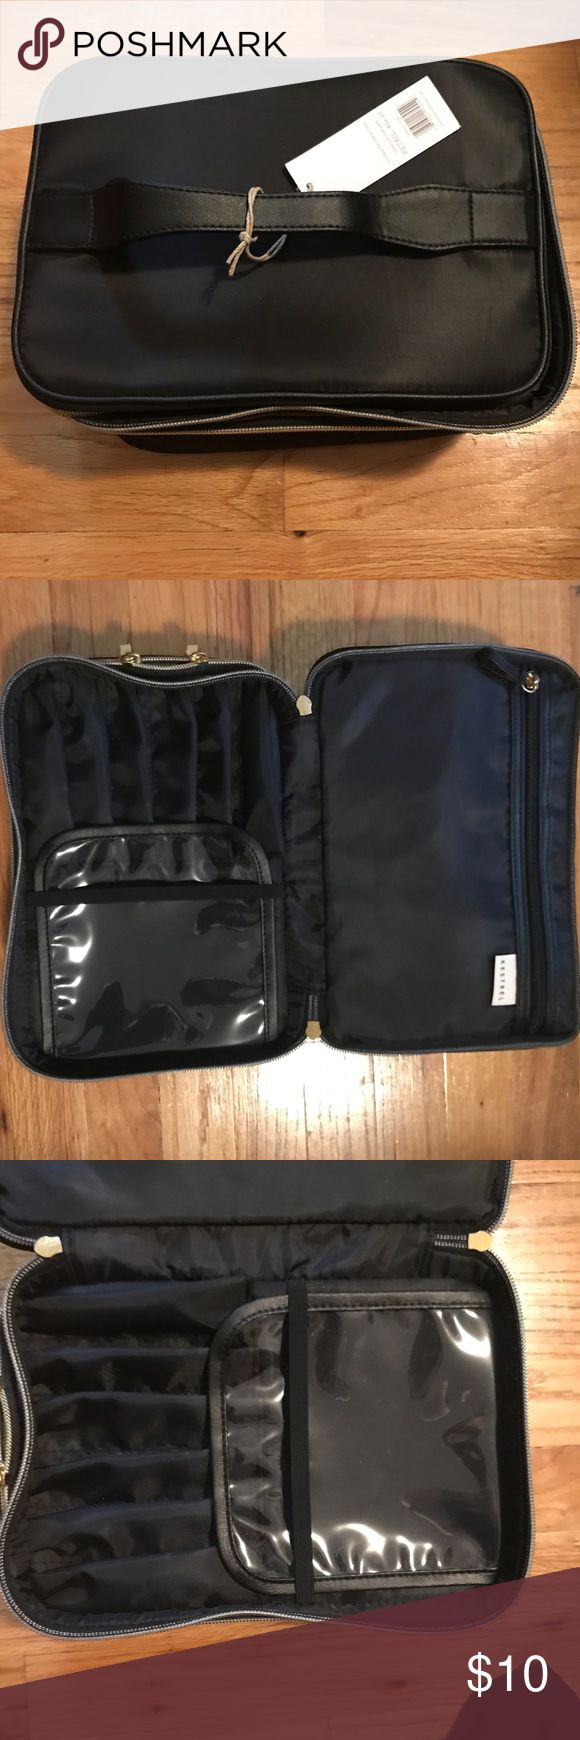 """Makeup Carrying Bag Black💄👛 Black makeup carrying bag (case) with gold toned hardware. Case zippers open in two tiers: the first has an hug internal zipper pouch on one side and on the other side, fitted slots for makeup brushes, lip or eye pencils, shadow sticks—anything in a long tube. A clear plastic piece covers the tops of the """"brush holders"""" and is also a pouch. The next tier zippers open to a roomy case for lose makeup and toiletries. New with tags and never used!! 👛💄 Kestrel Bags…"""